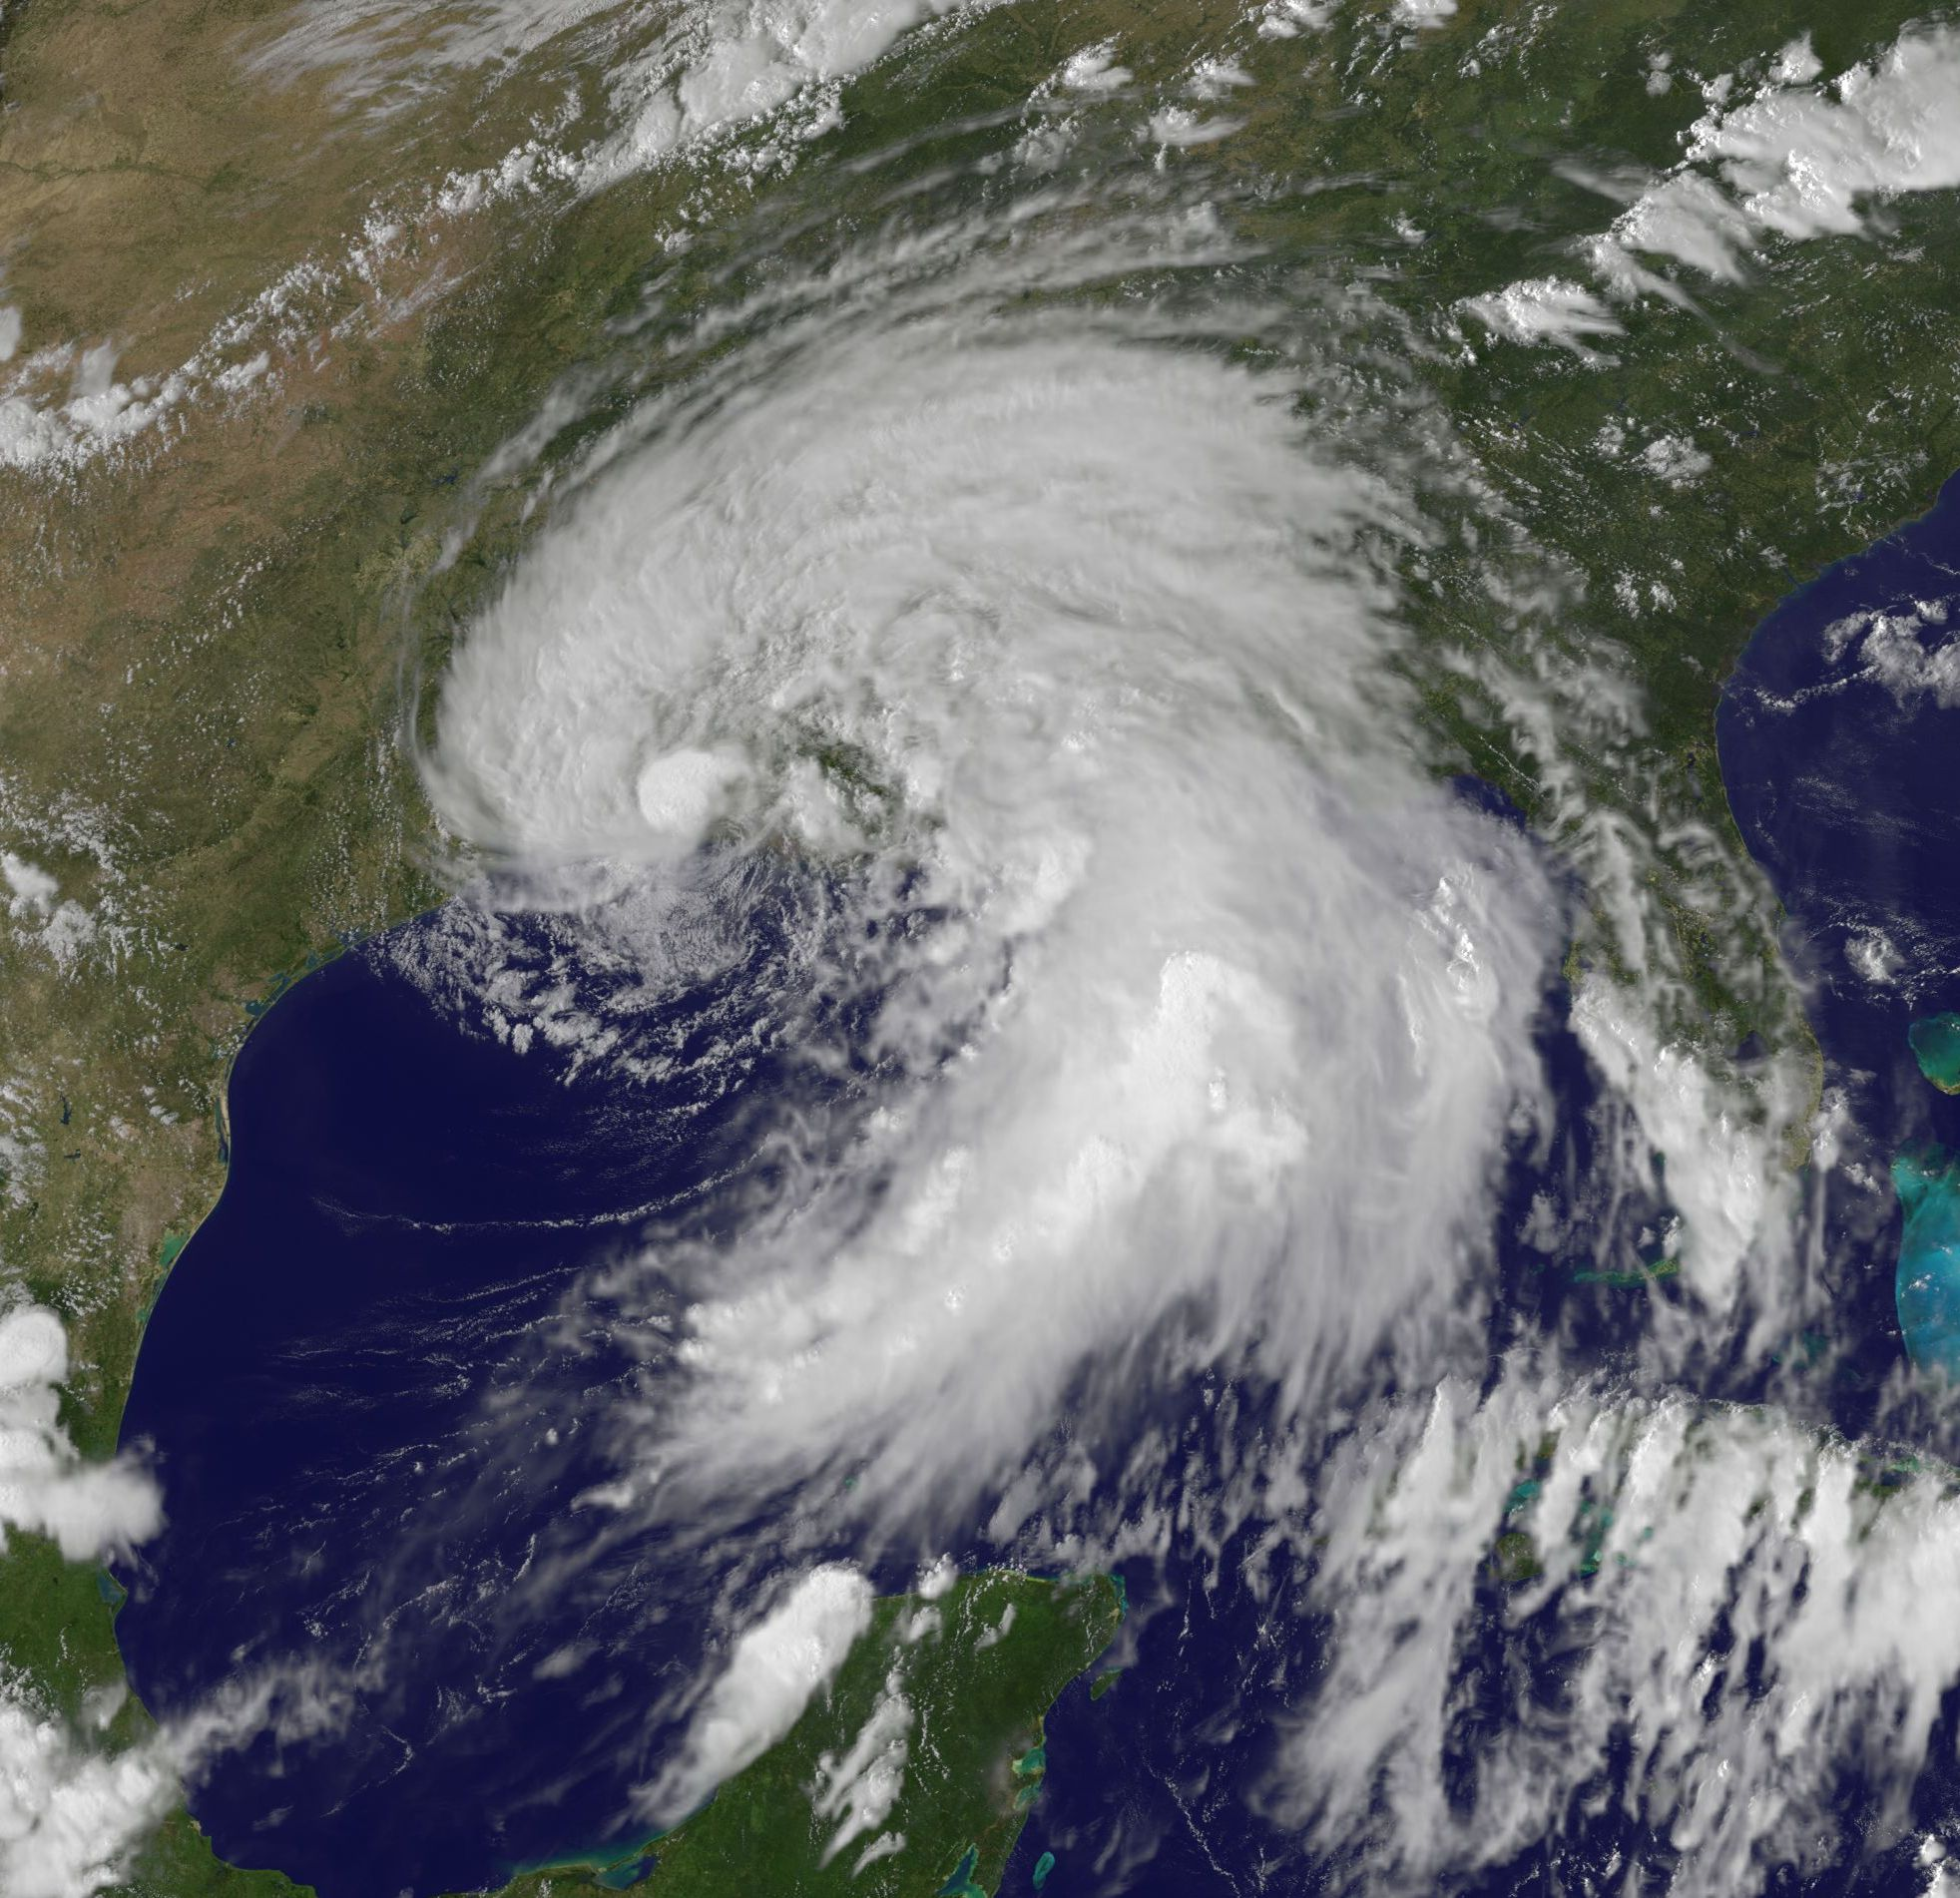 Tropical Storm Lee over southern Louisiana: late afternoon of September 3, 2011